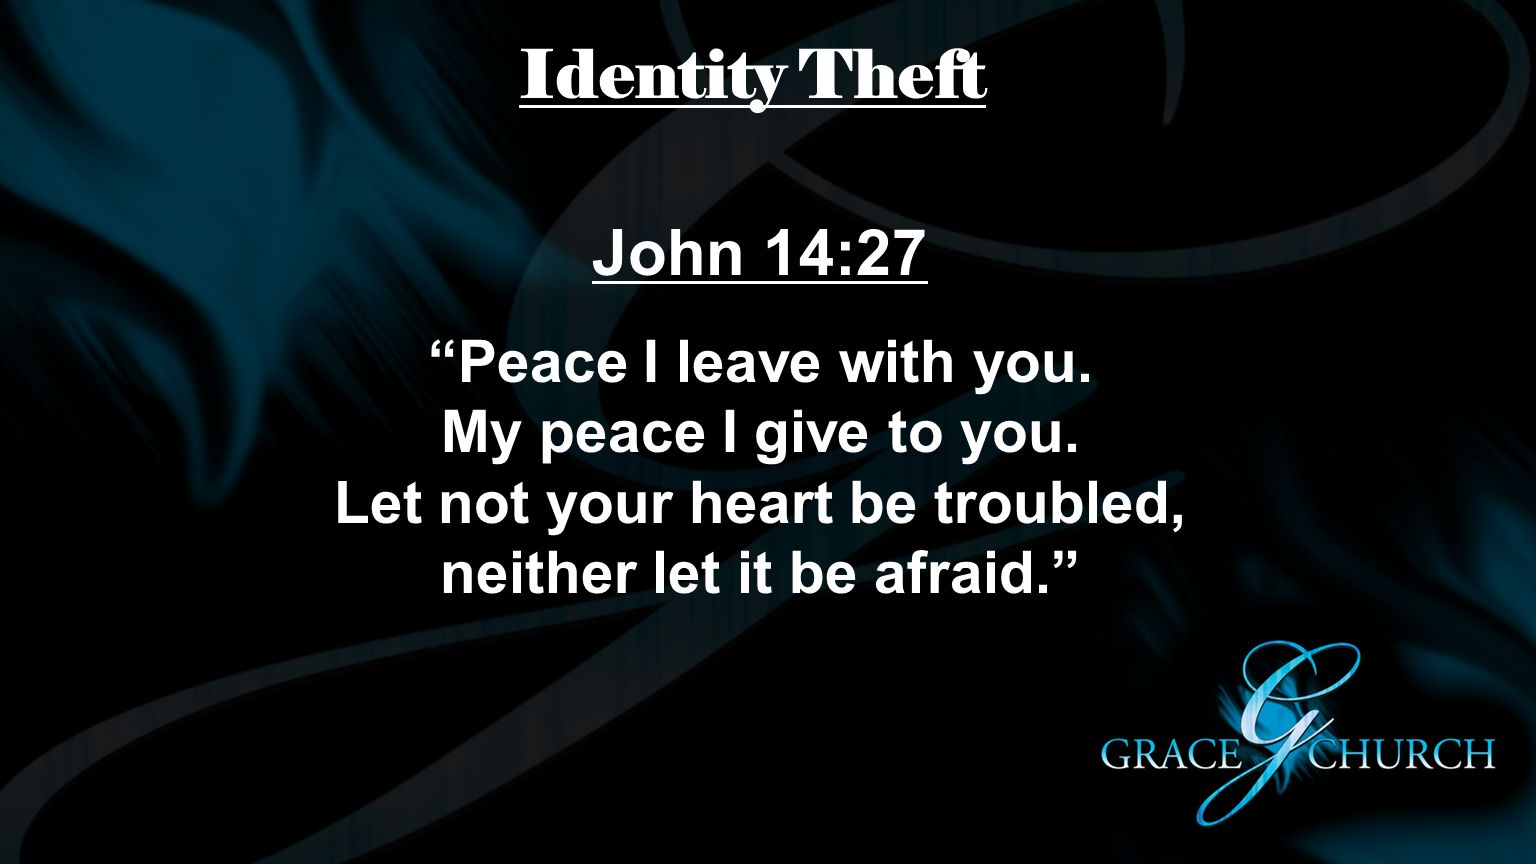 Identity Theft John 14:27. Peace I leave with you.